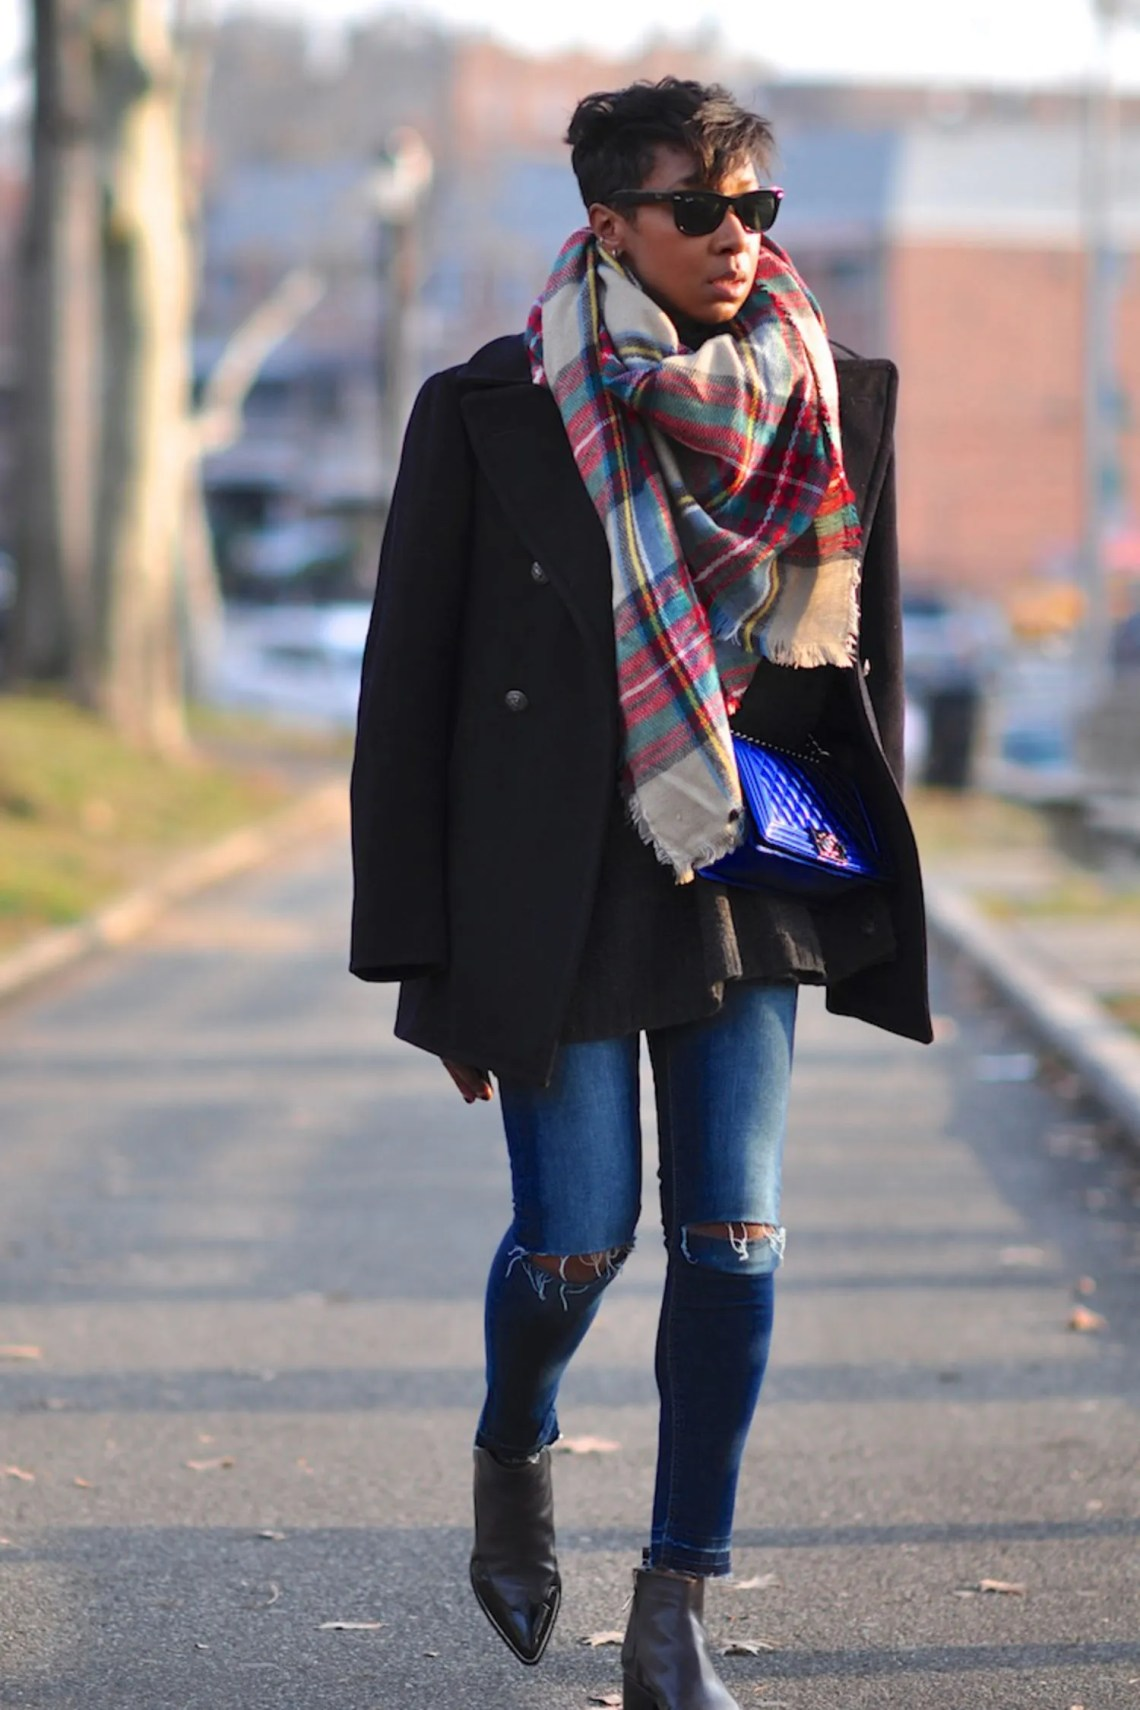 Casual Winter Outfit Ideas for Style and Comfort | Glamour